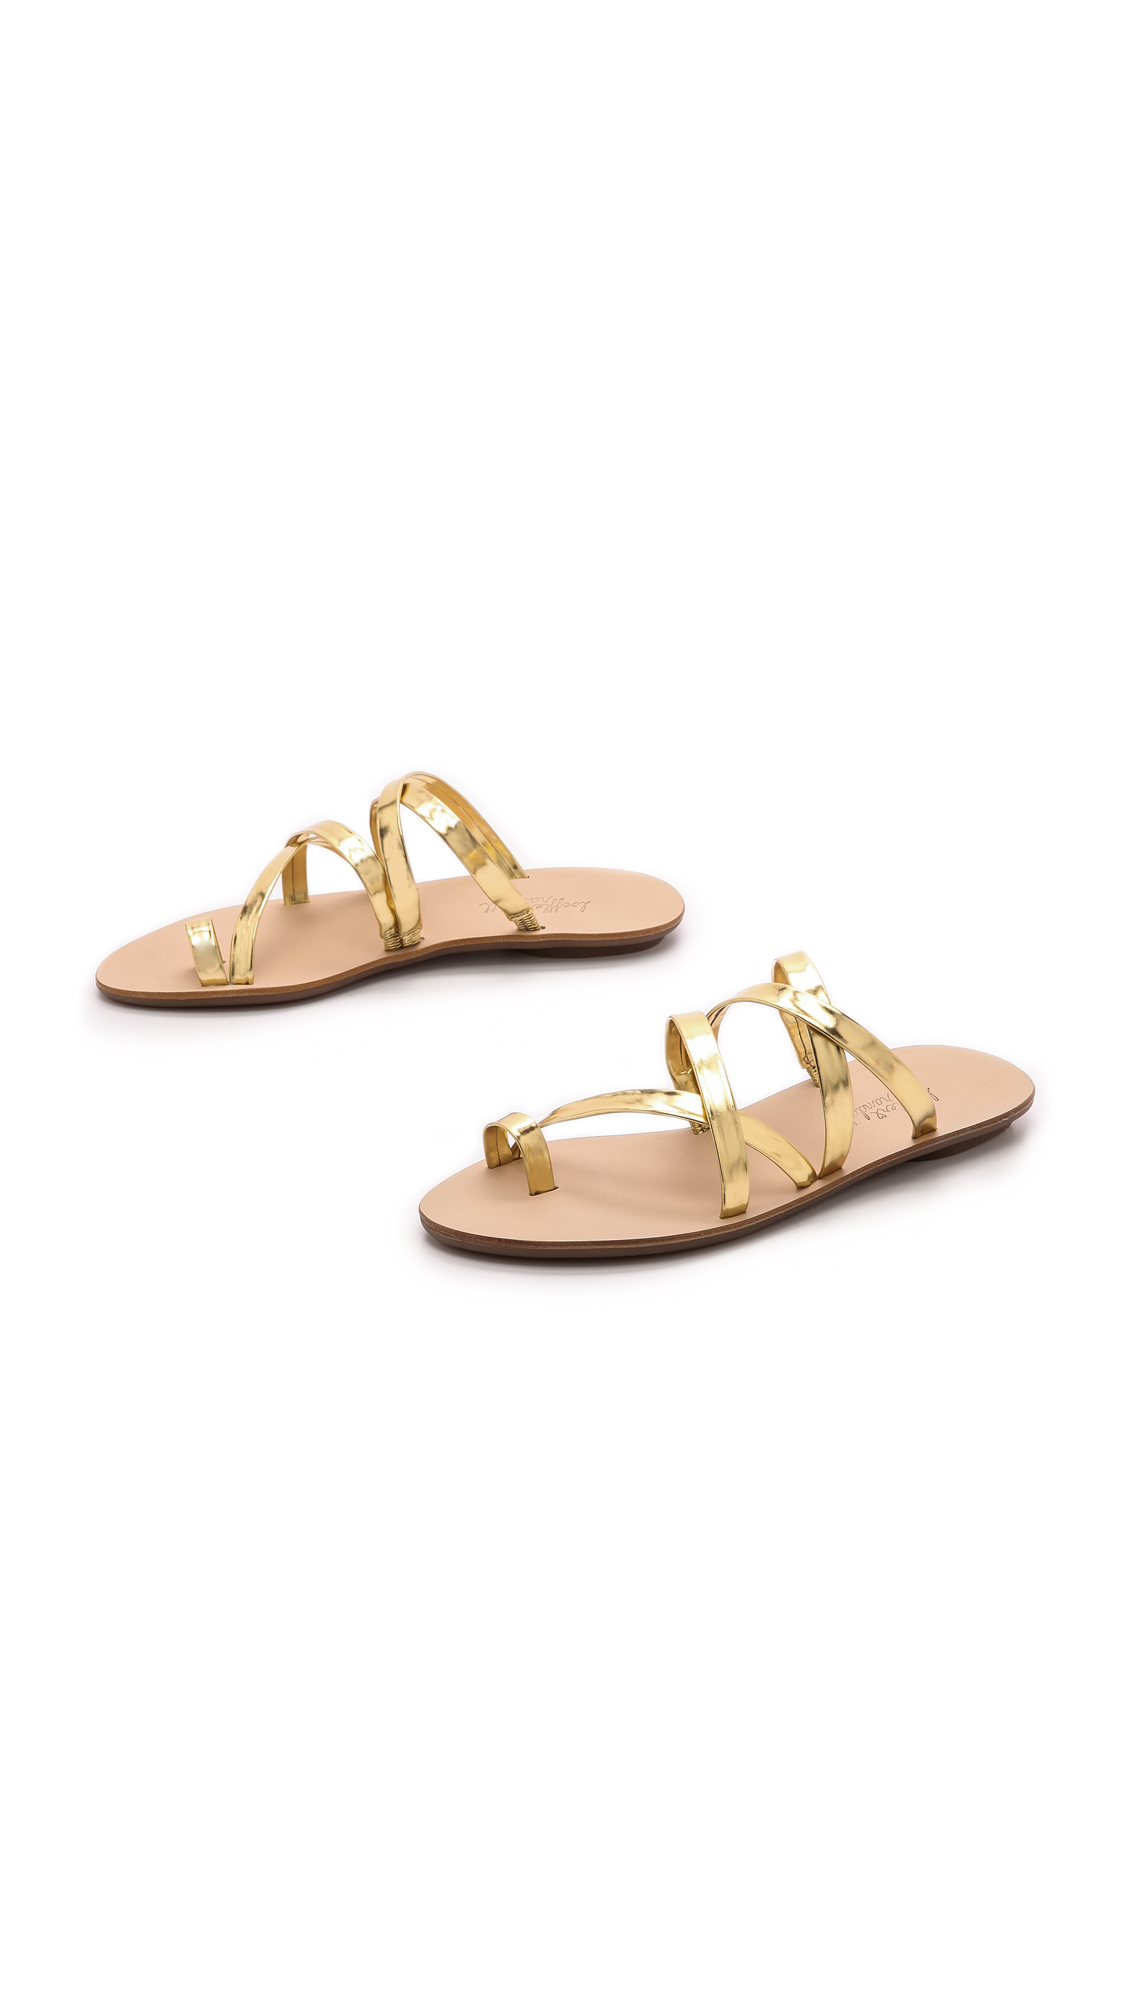 5354d384c Loeffler Randall Sarie Strappy Flat Sandals - Gold in Metallic - Lyst